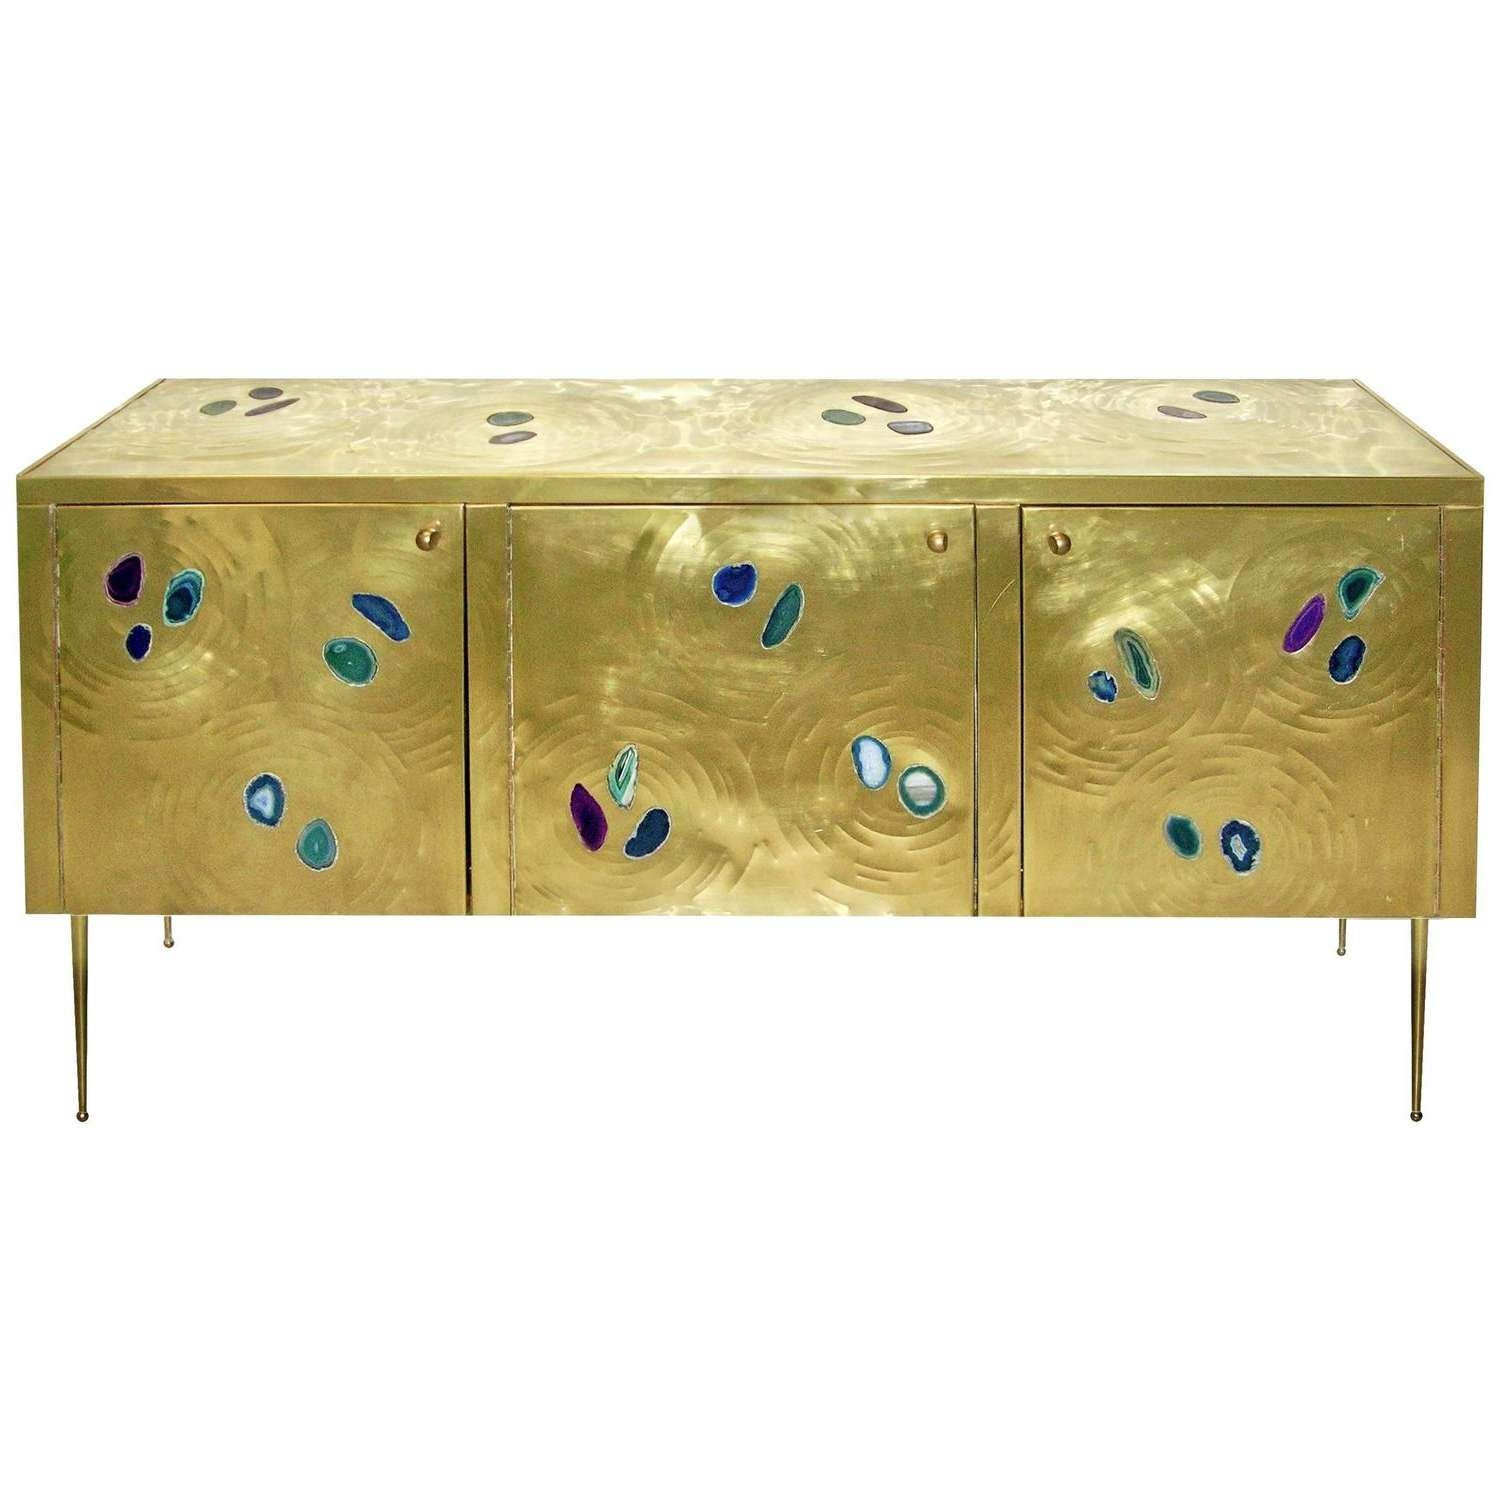 Modern Sideboards – 190 For Sale At 1stdibs With Regard To Green Sideboards (View 19 of 20)